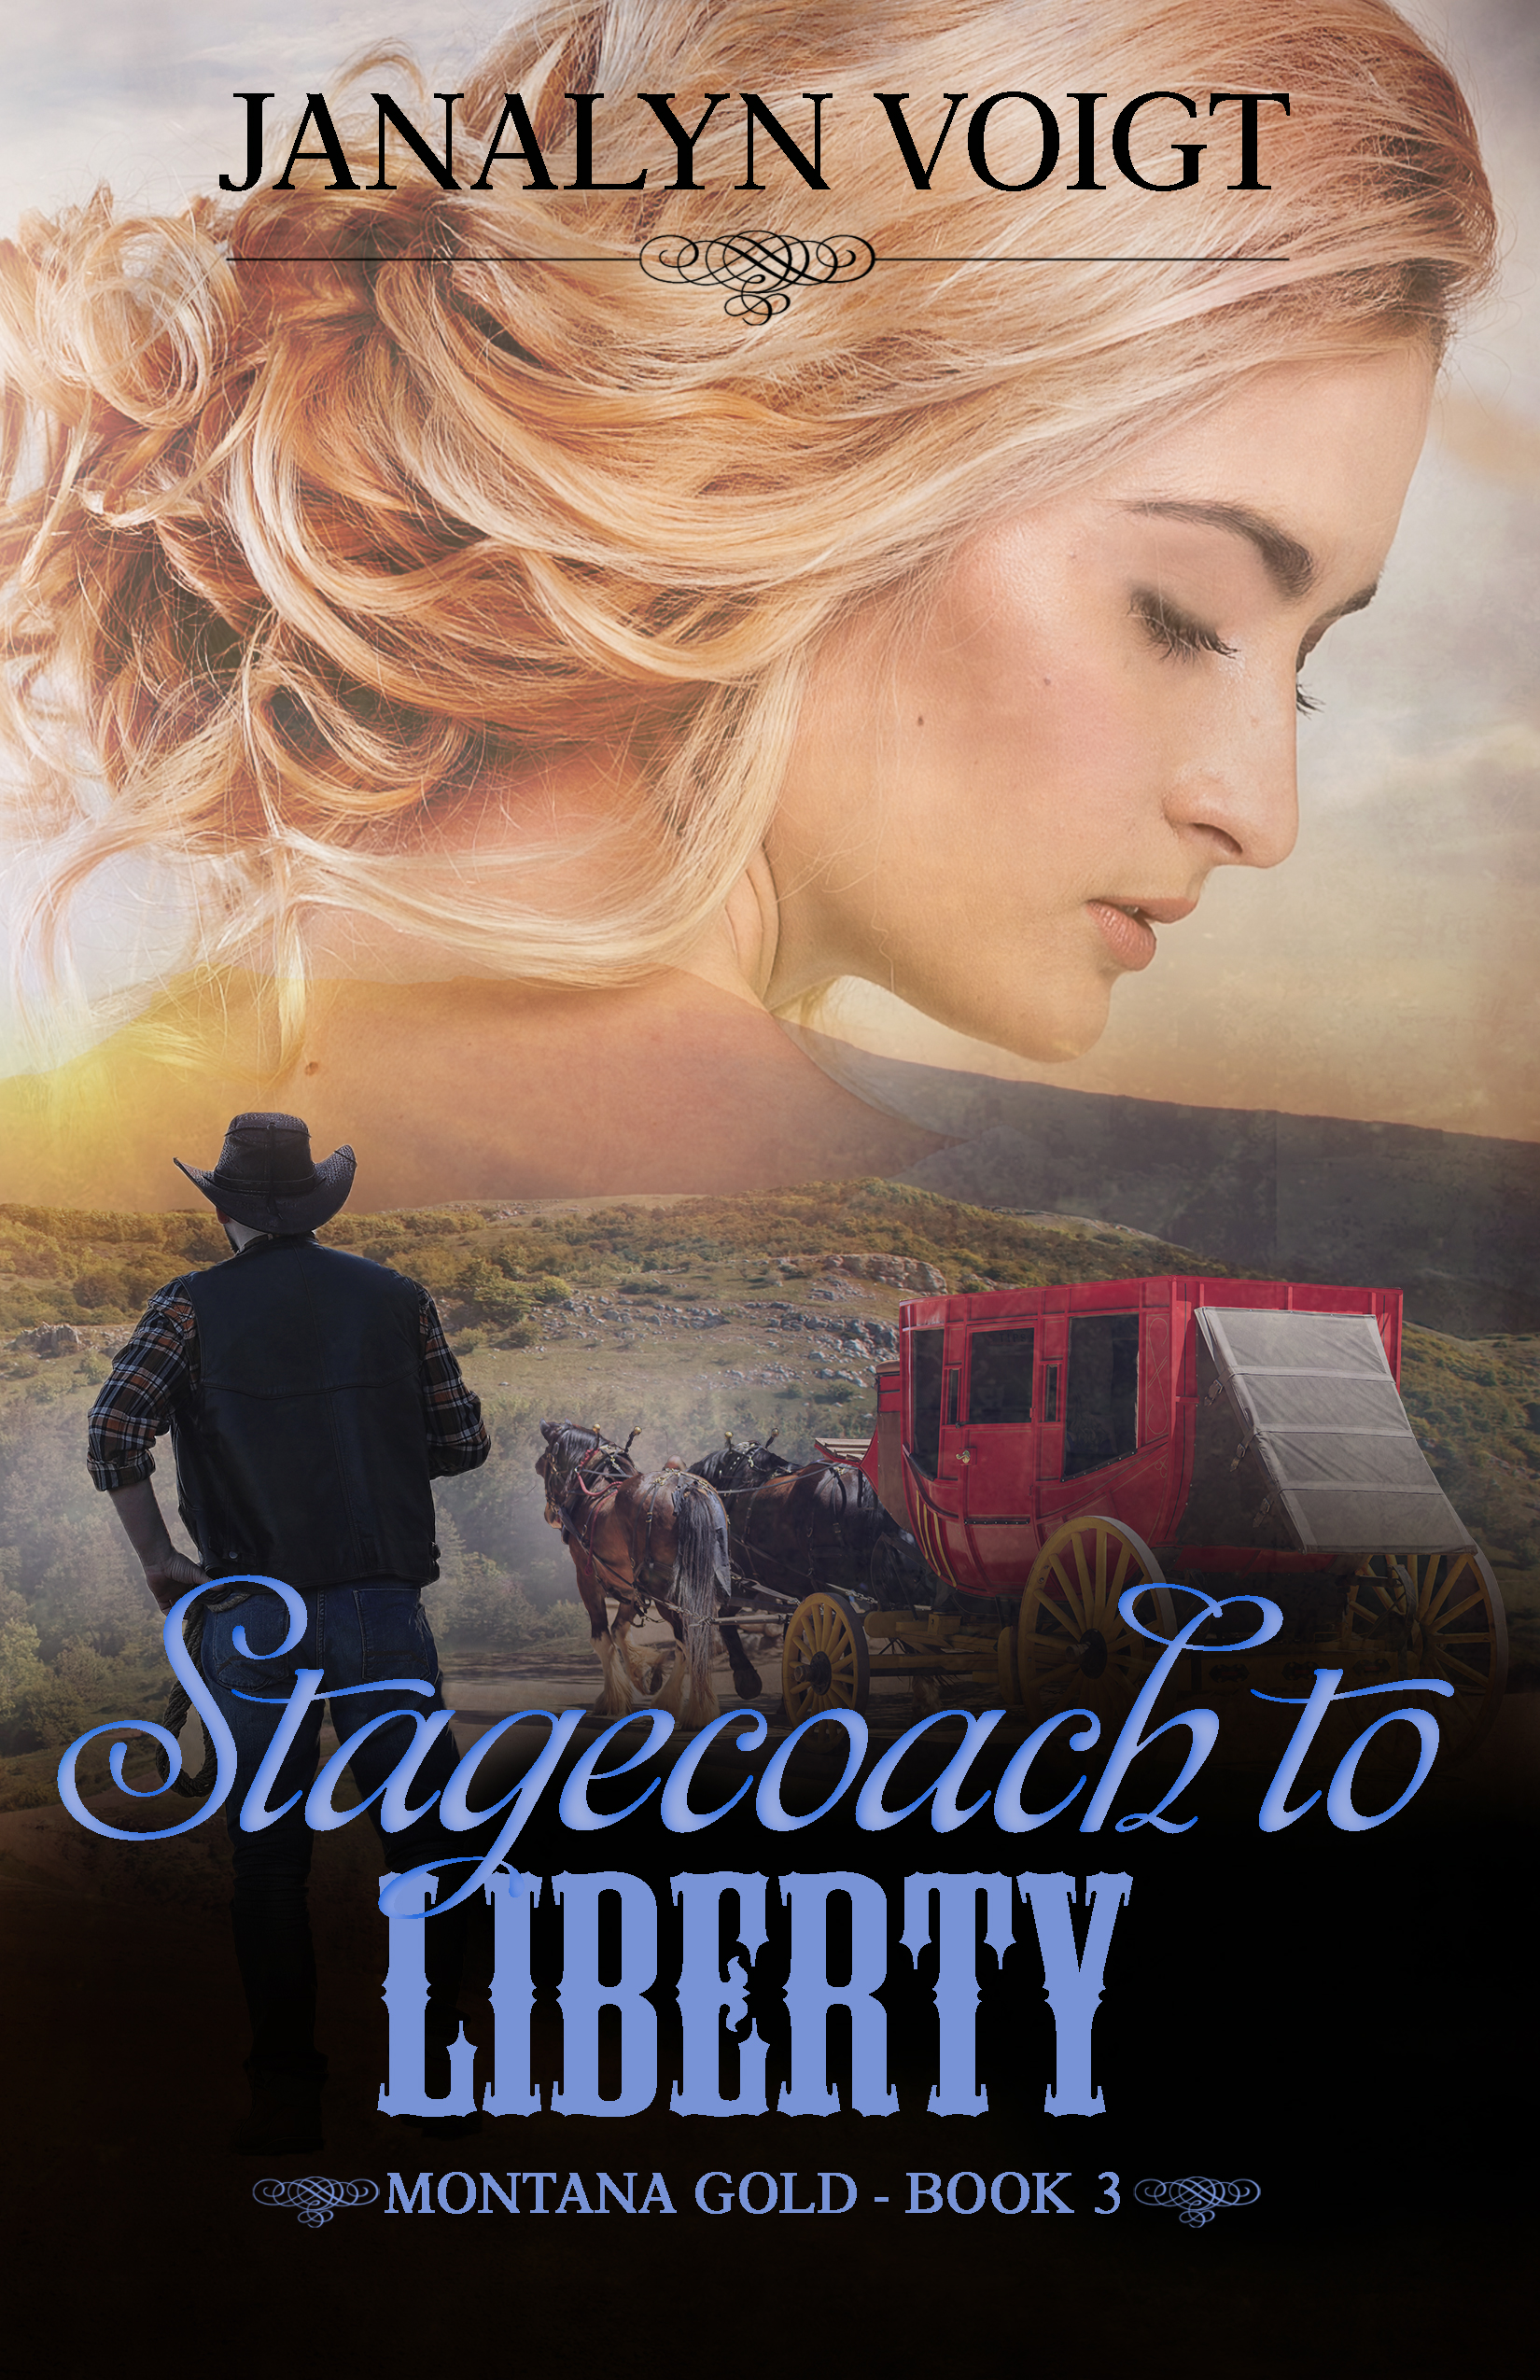 Stagecoach to Liberty by Janalyn Voigt